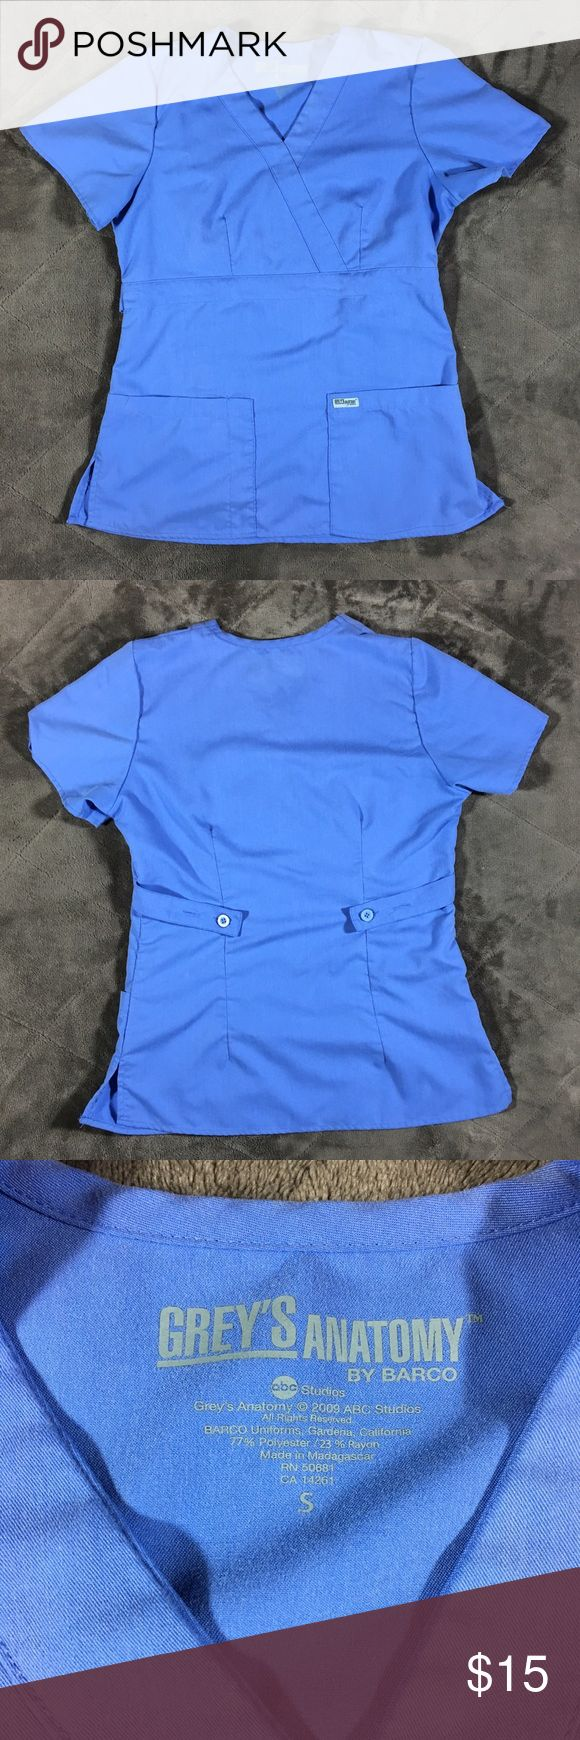 Grey's Anatomy Scrub Top Light Blue Mock Wrap Grey's Anatomy Mock Wrap 3-Pocket scrub top in Serenity Blue (light blue). Size small (fits size 2-4 per website). Very good pre-owned condition. Has one tiny snag plus small amount of pilling on back right side, as pictured.  No trades, no modeling.  Thanks for looking, and happy Poshing!!  77% polyester, 23% rayon Grey's Anatomy Other